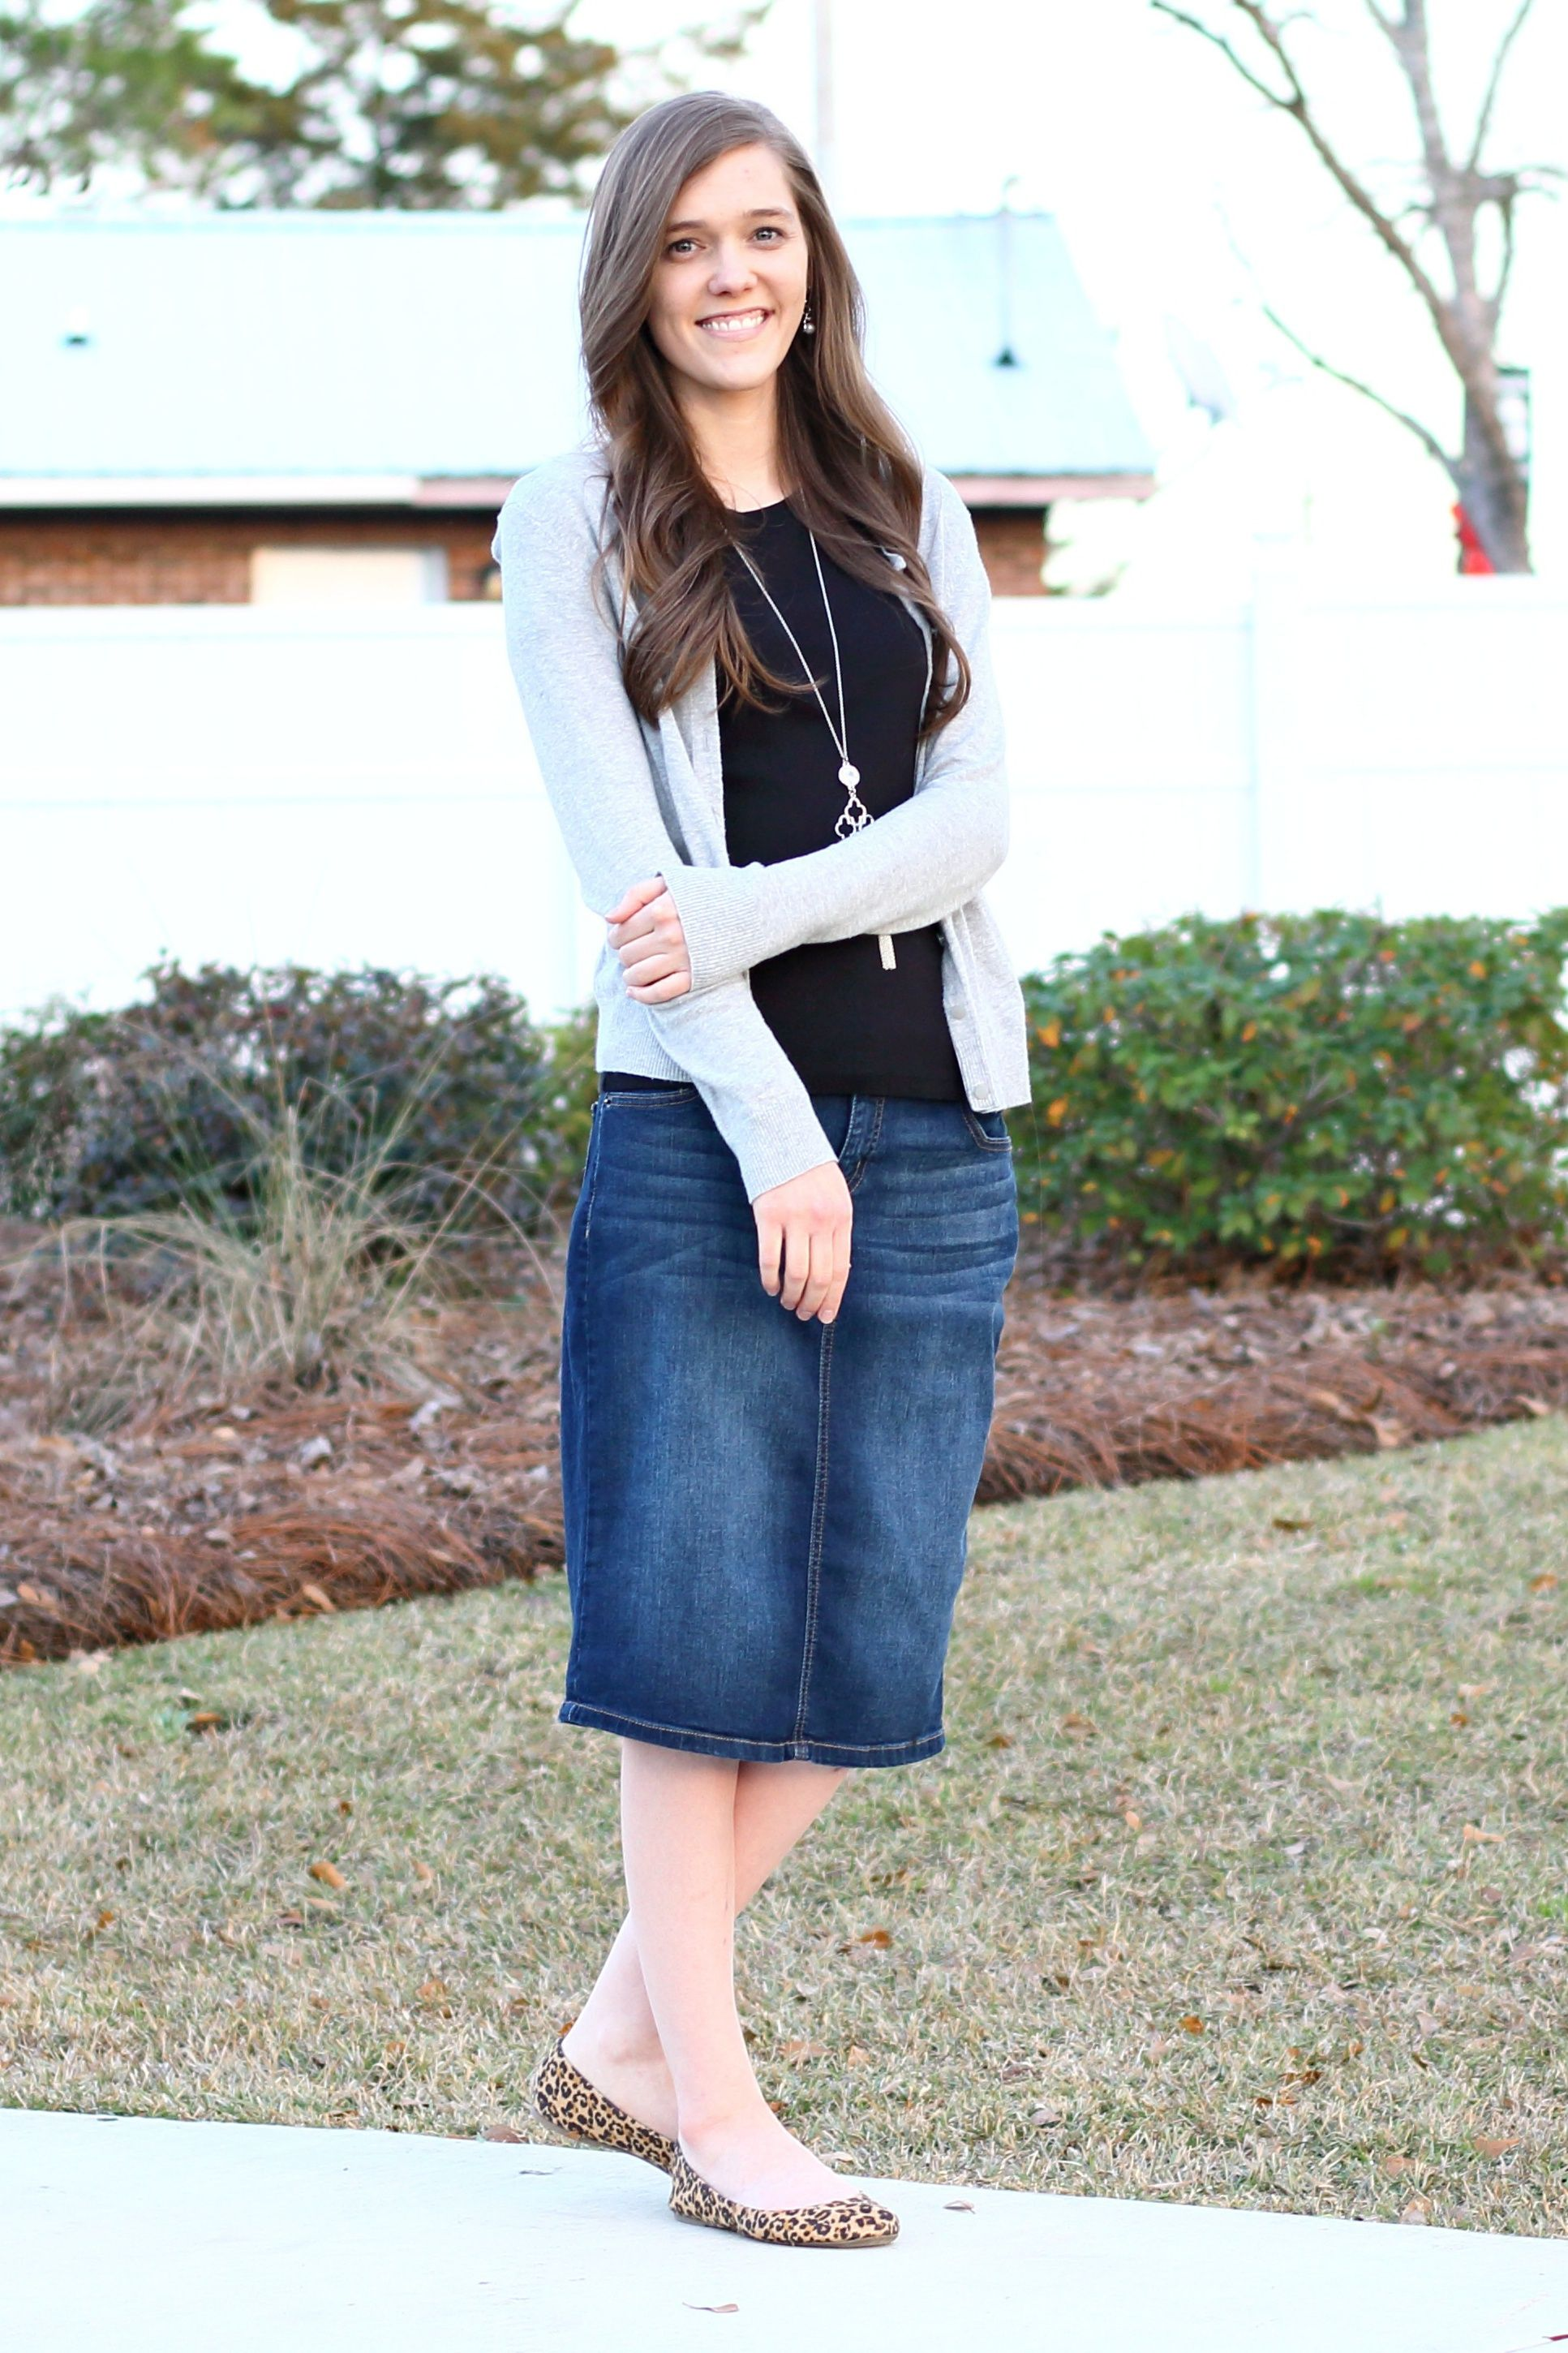 142313e859d Modest Casual Outfit Idea for Church  Denim Skirt  Leopard Print  Flats  Gray Cardigan  Black Tee  Fall Spring Style ...